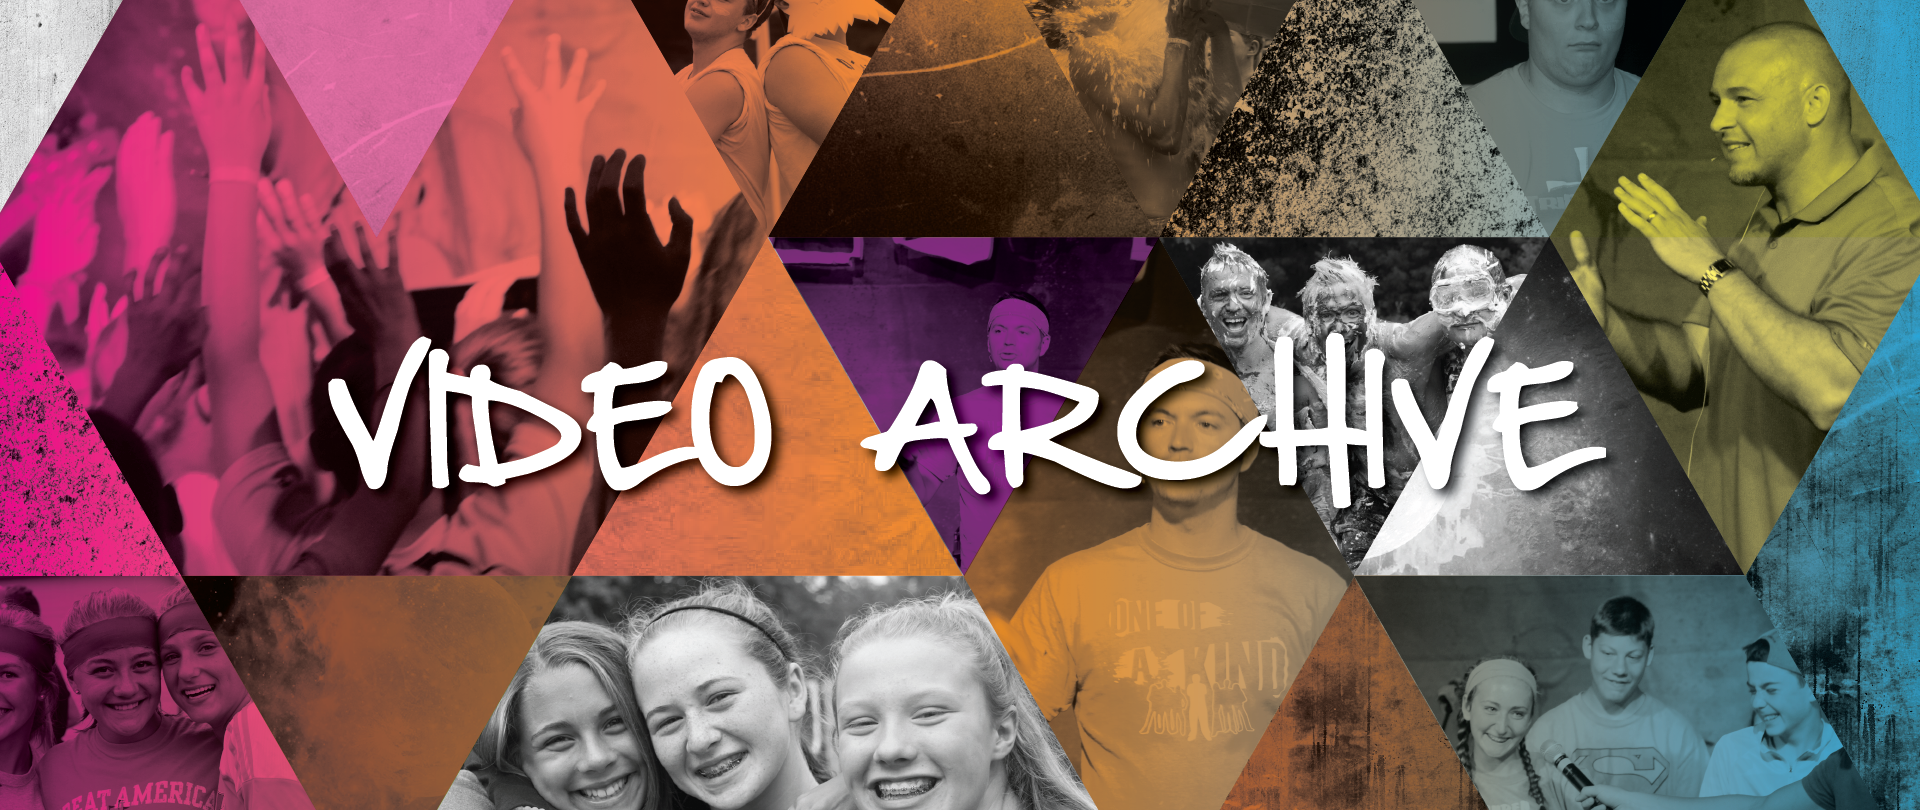 The rockyouth of Fenton, Lake Fenton, Linden, and Byron, Michigan exists to preach the Word of God, Baptize, and Disciple EVENT VIDEO ARCHIVE